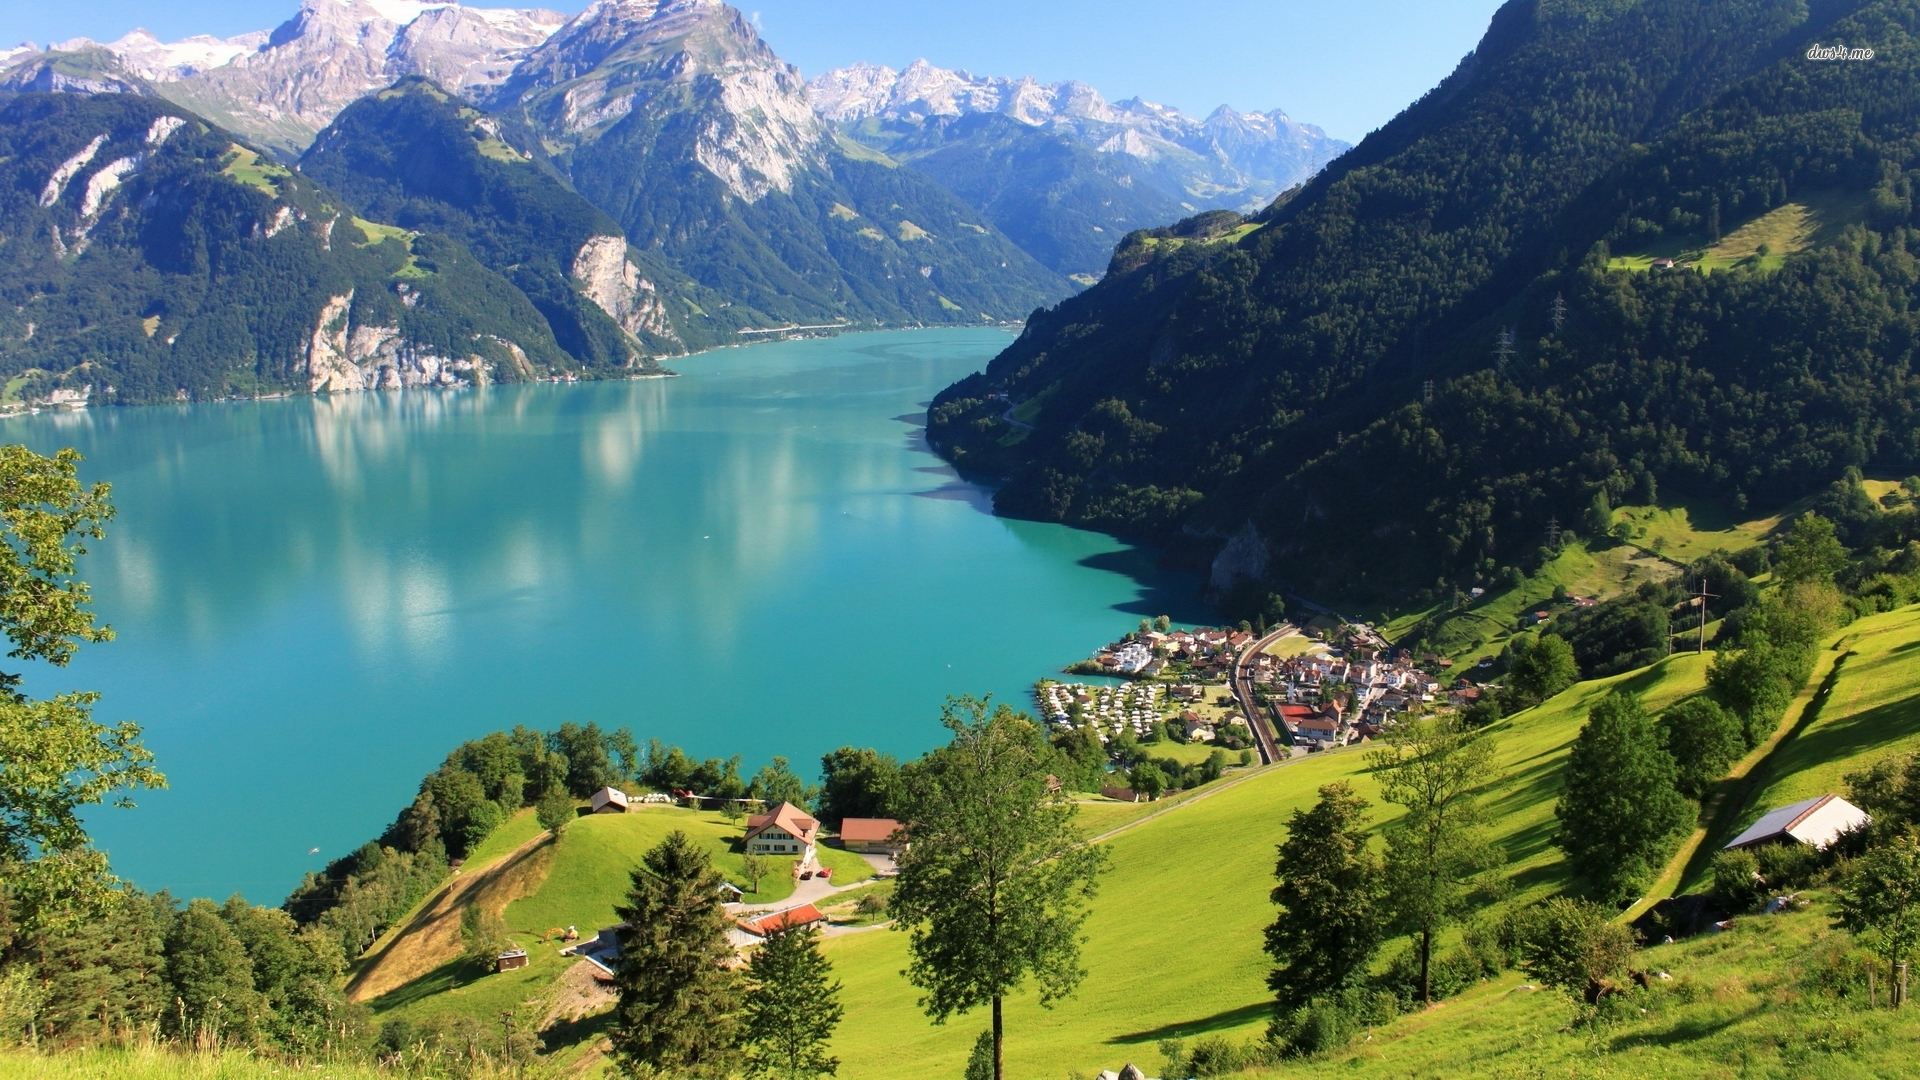 Passport-Chop-Lake-Lucerne-Switzerland.jpg